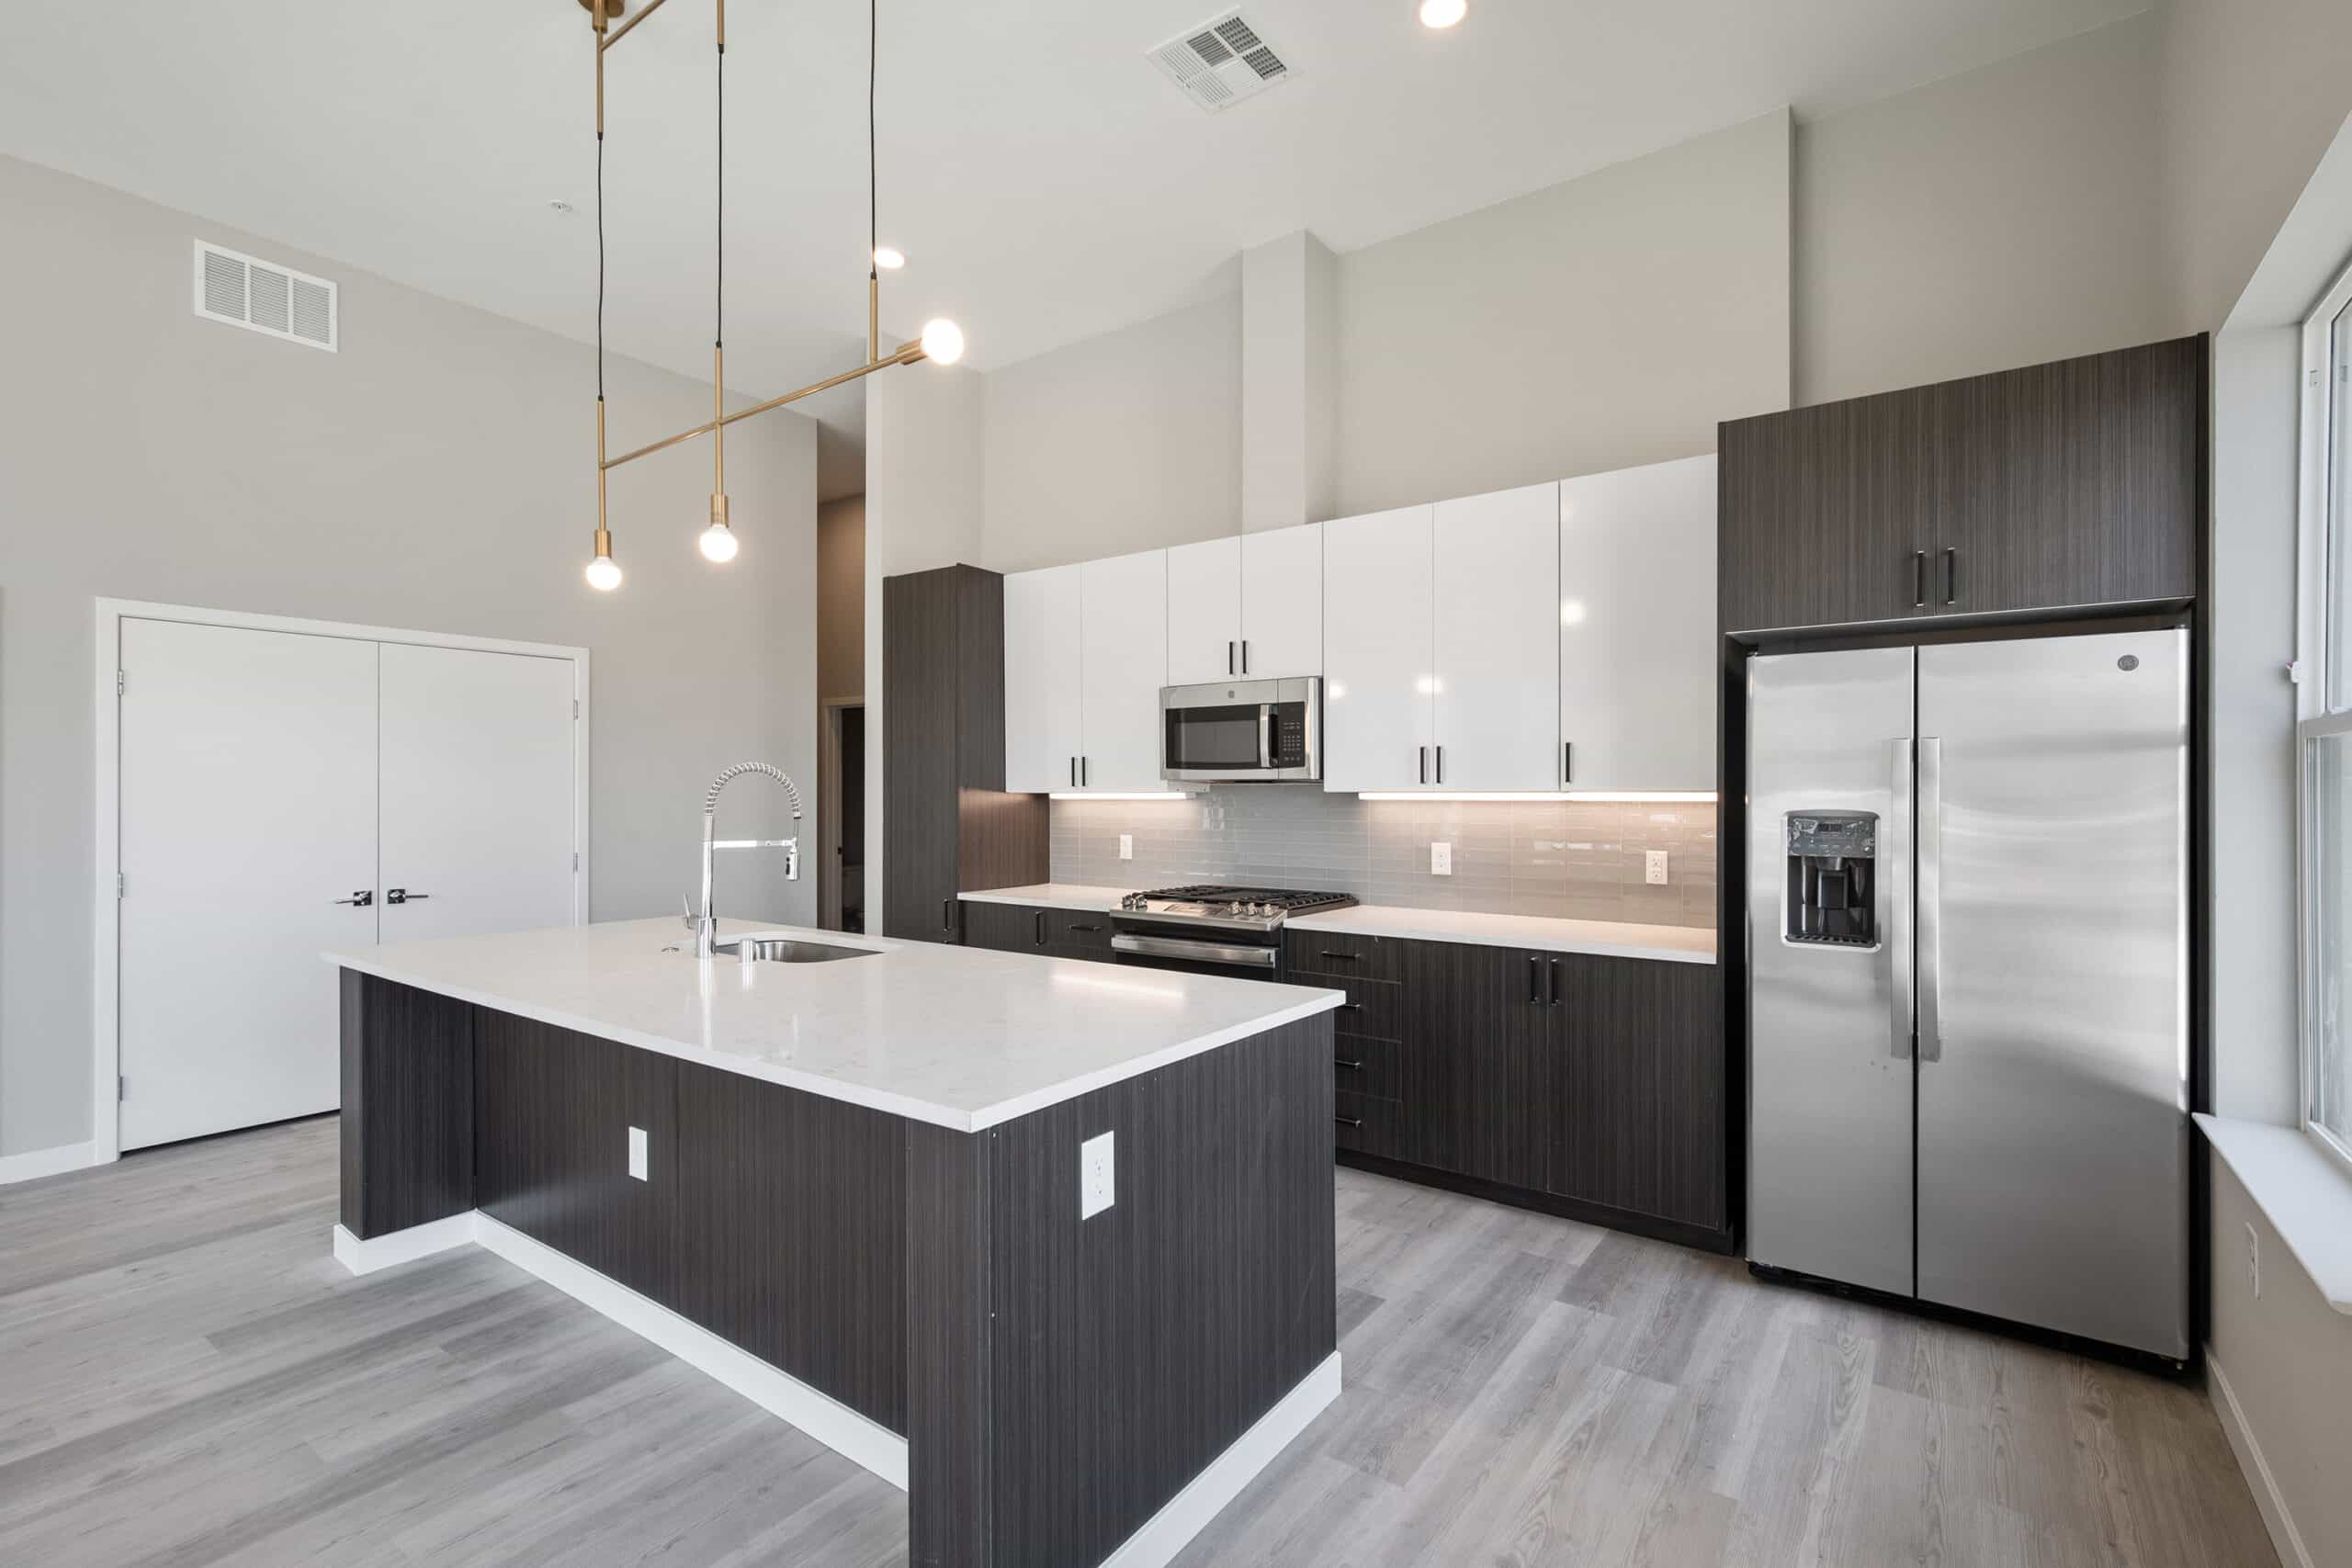 Auric Symphony Park apartment kitchen with white quartz countertops and stainless steel appliances